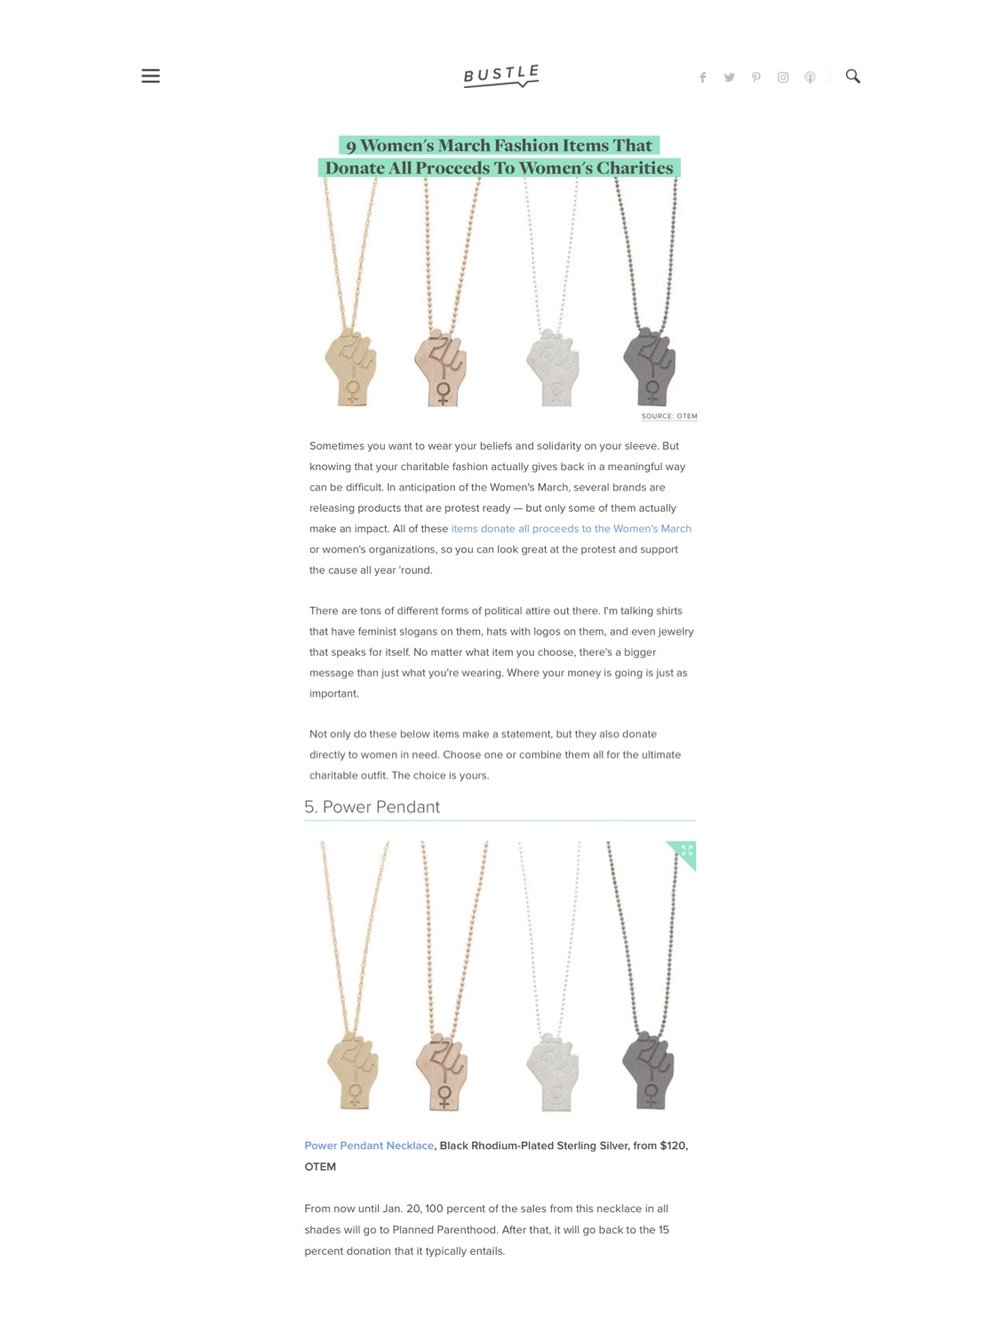 """""""Power Pendant""""necklace featured on Bustle magazine."""